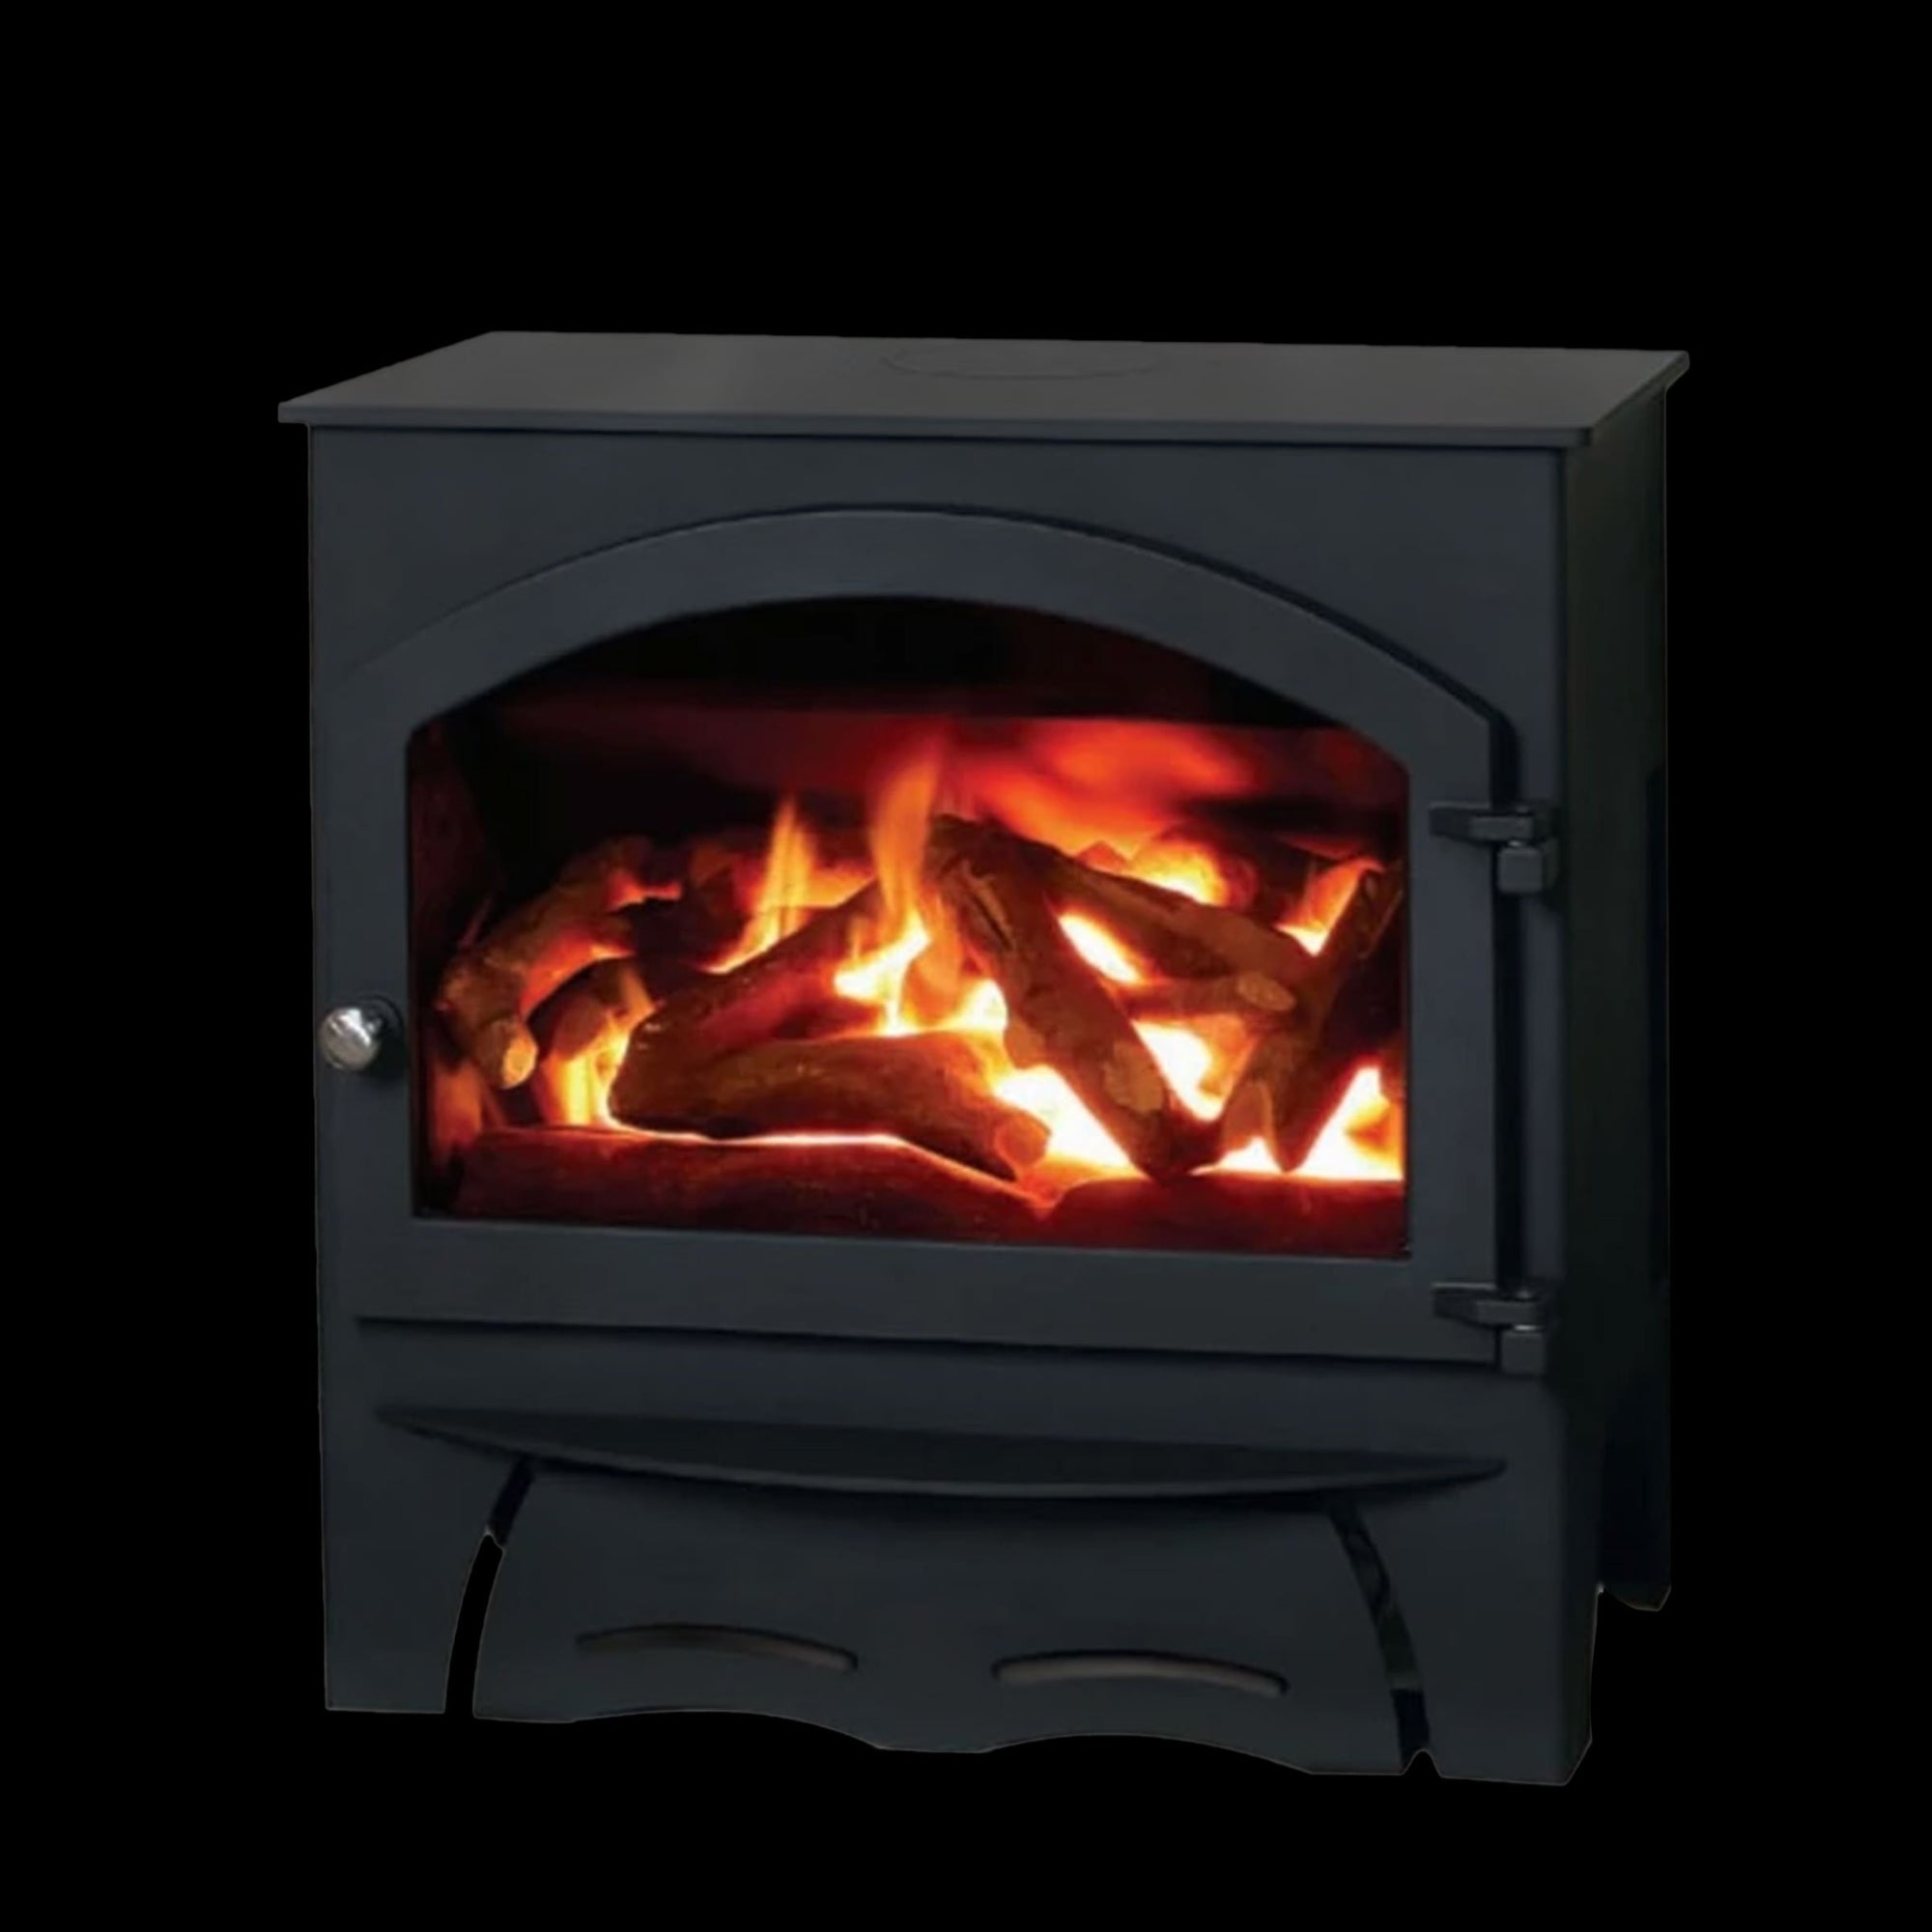 The Whitby Gas Stove